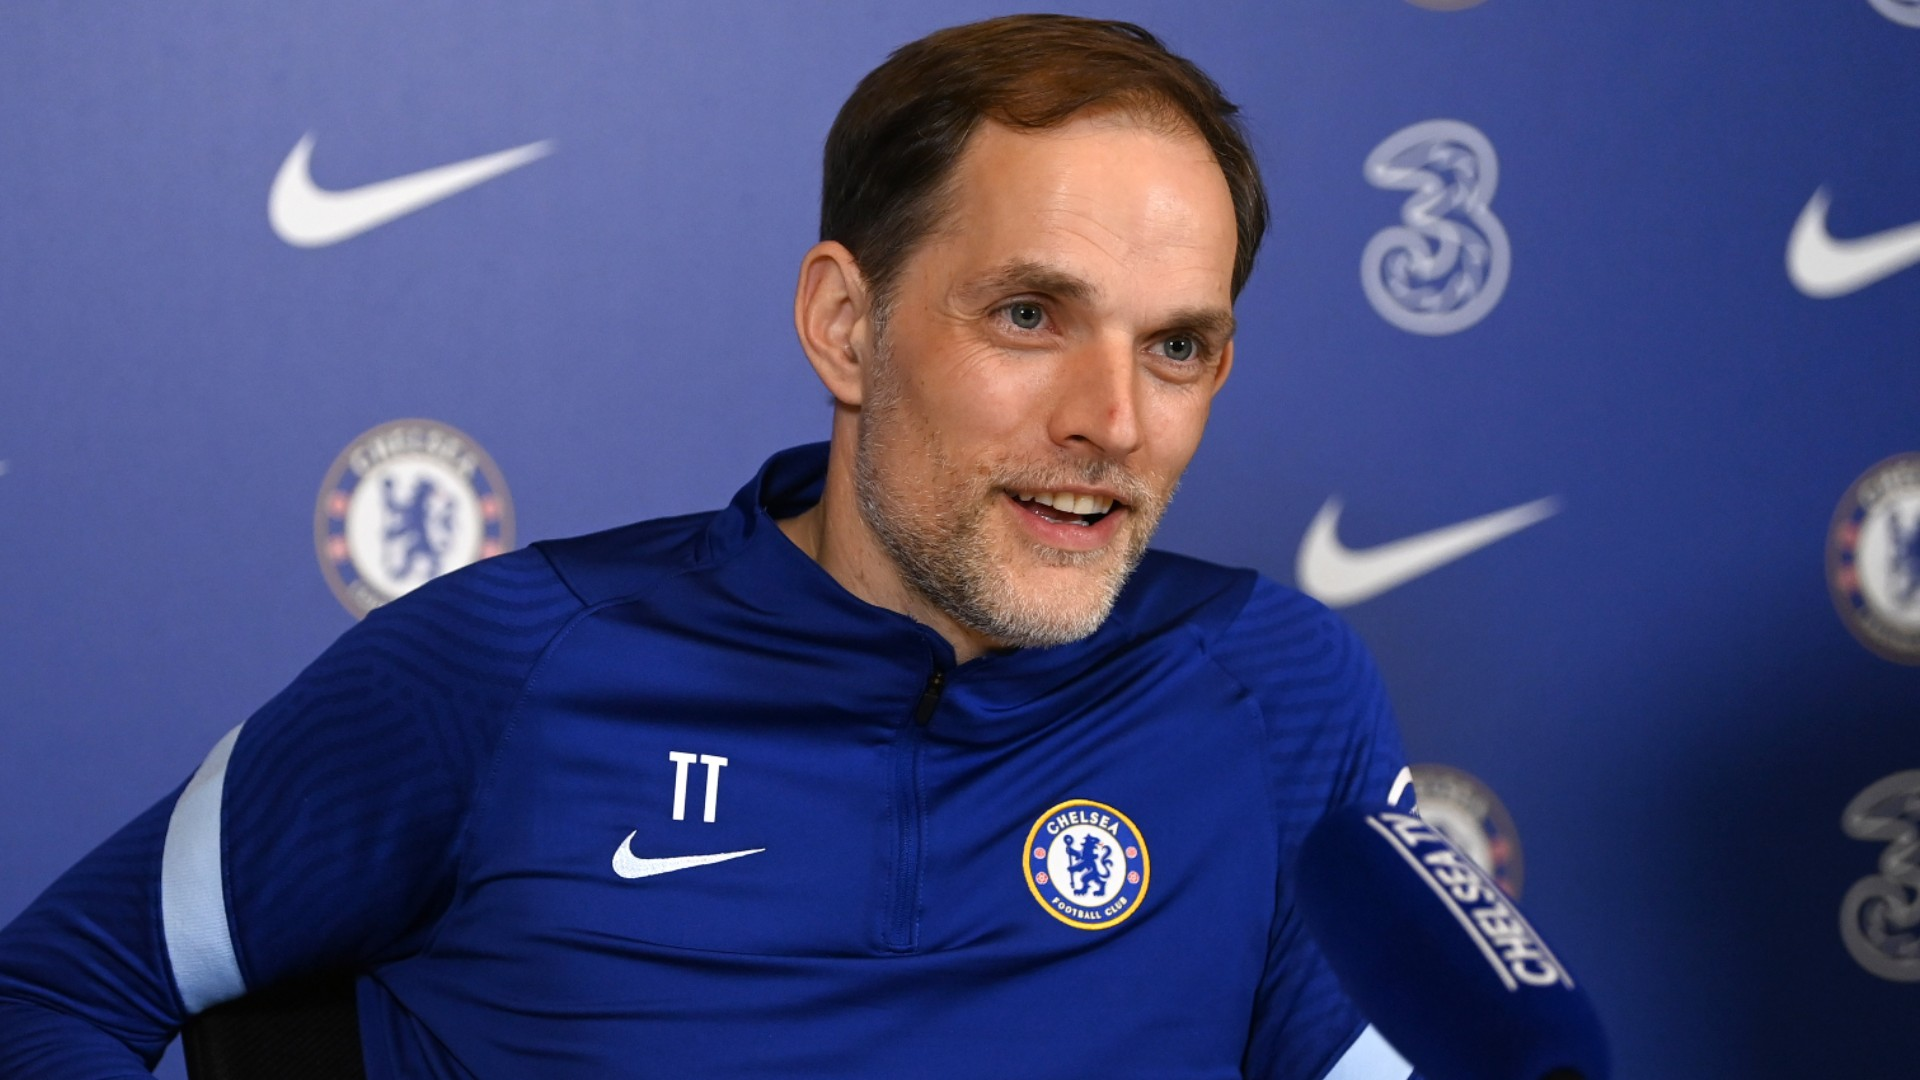 Tuchel: No celebrations for Chelsea, even if they win FA Cup